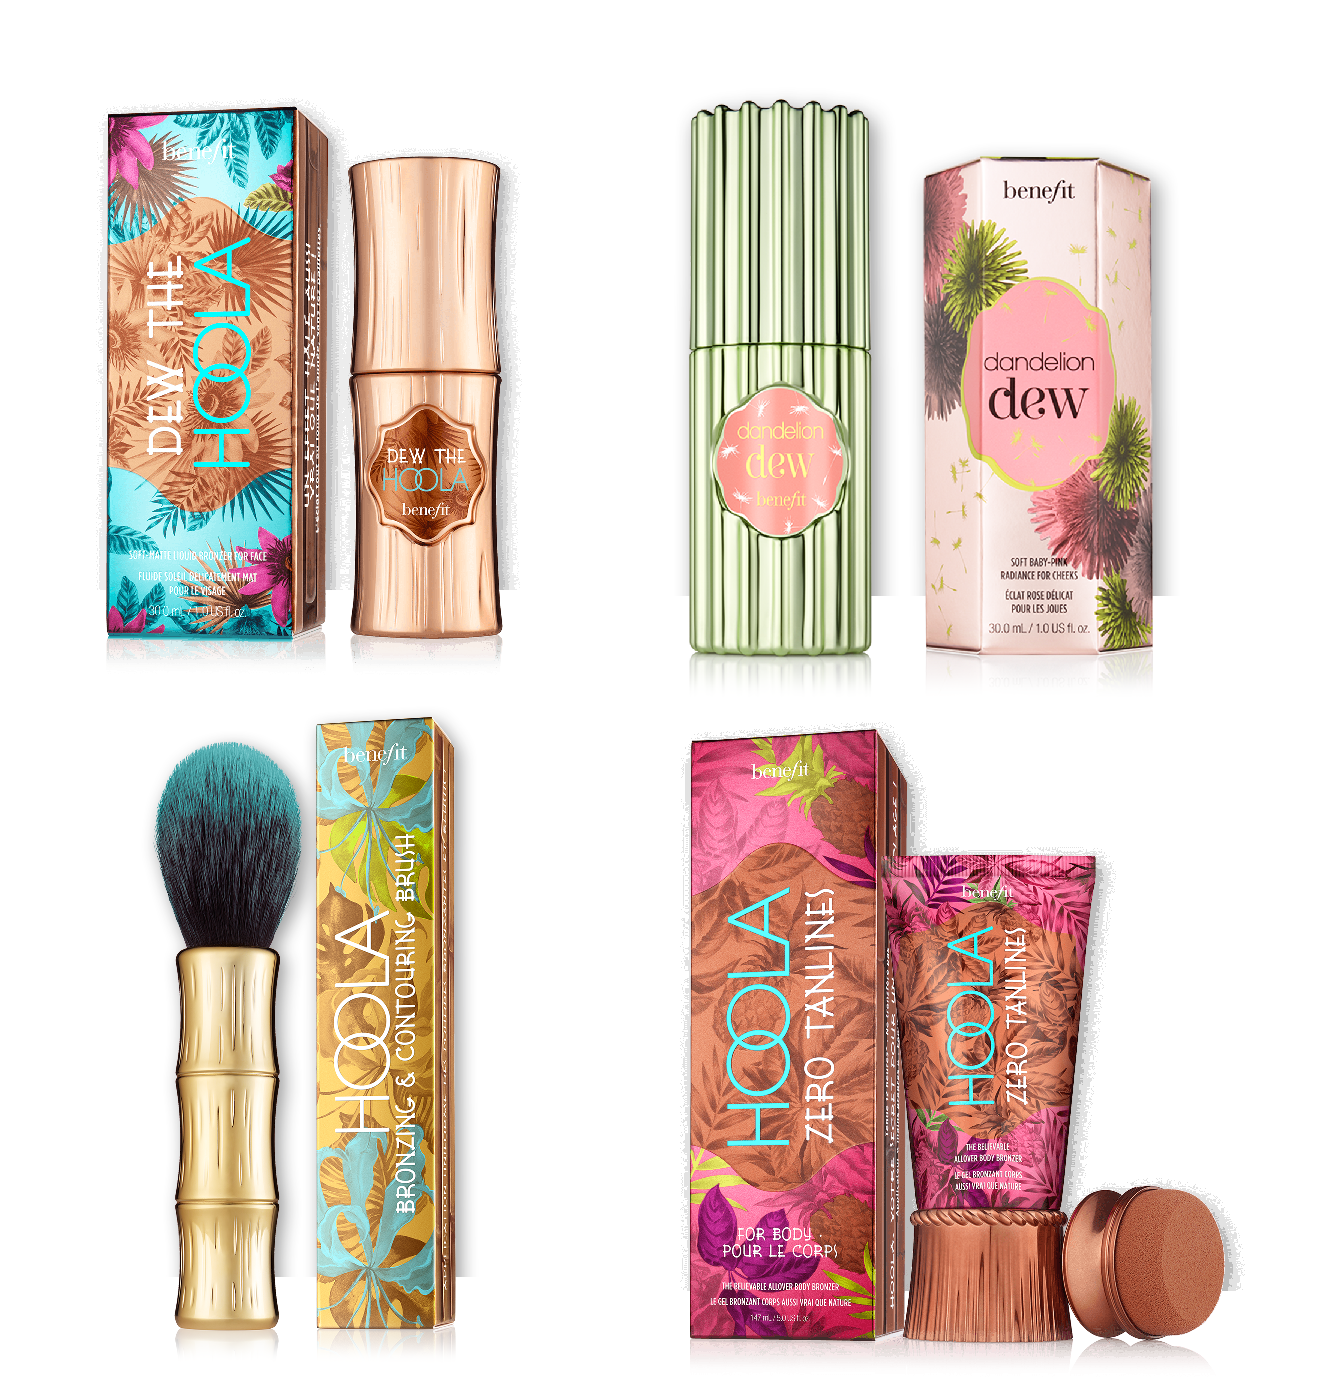 New Benefit Cosmetics Products Arriving 2/26 | Spring 2016 Makeup ...